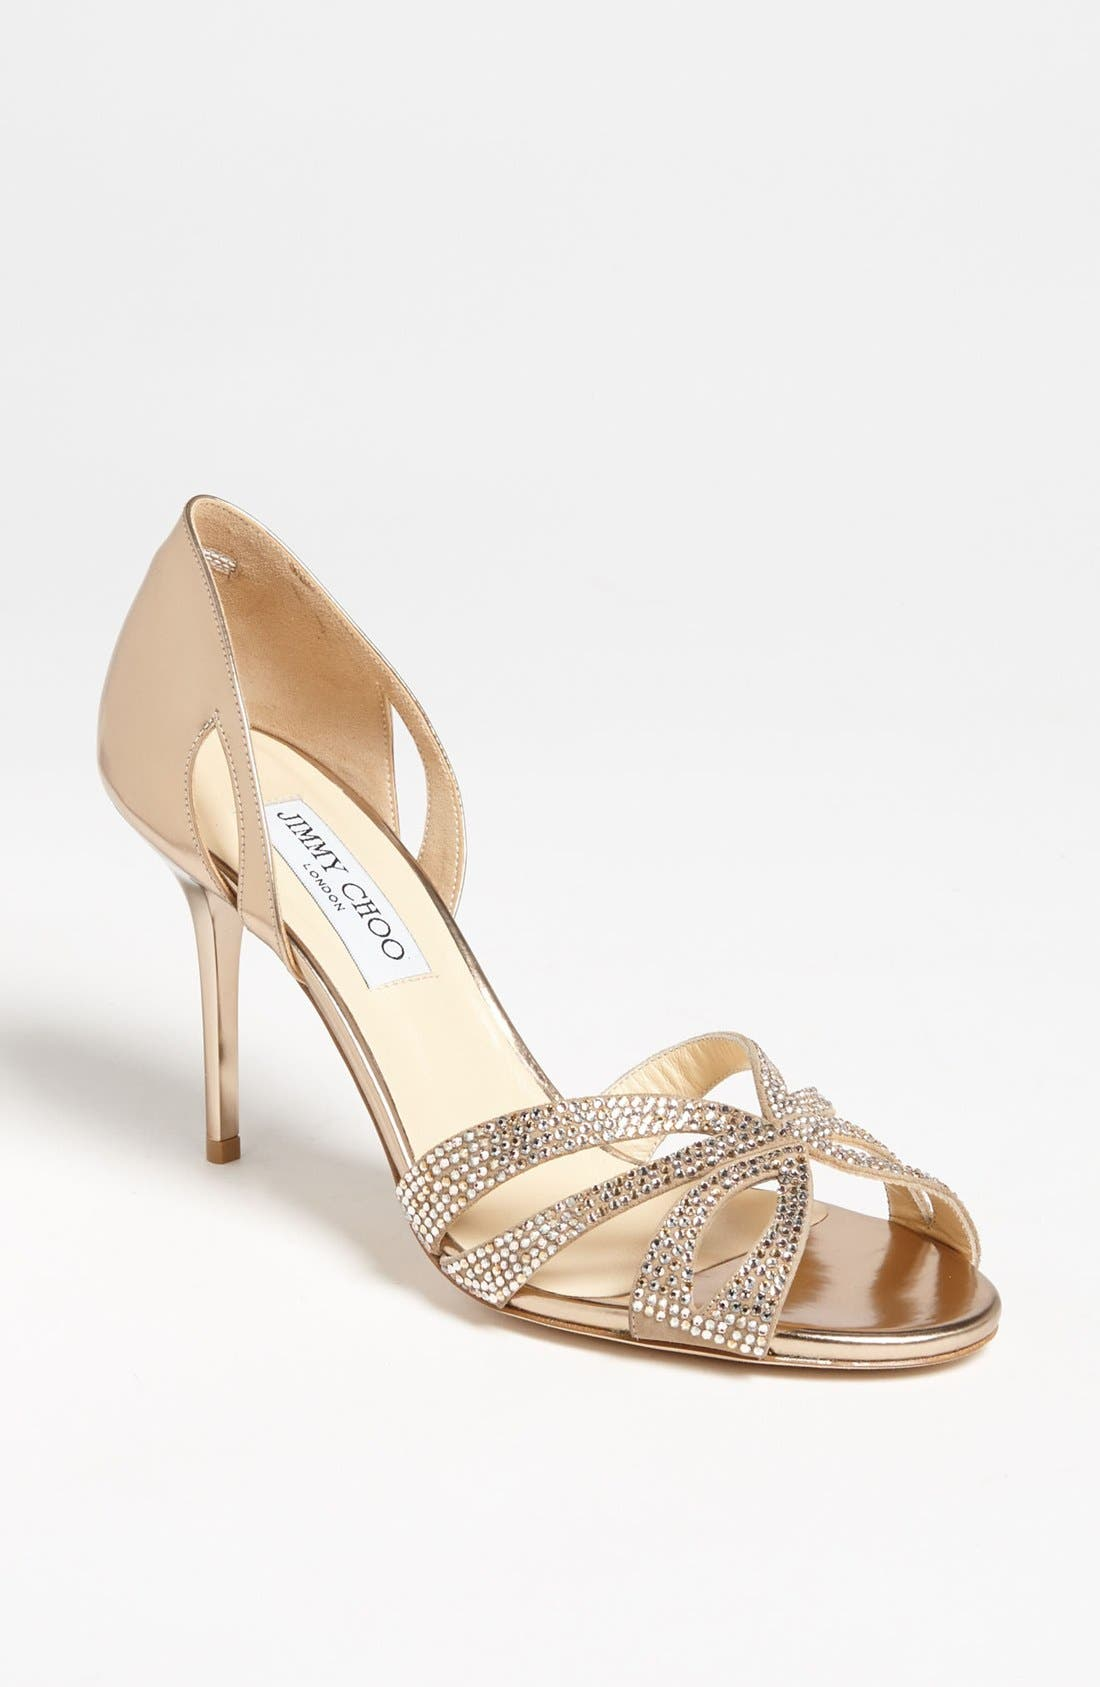 Main Image - Jimmy Choo 'Bauble d'Orsay' Sandal